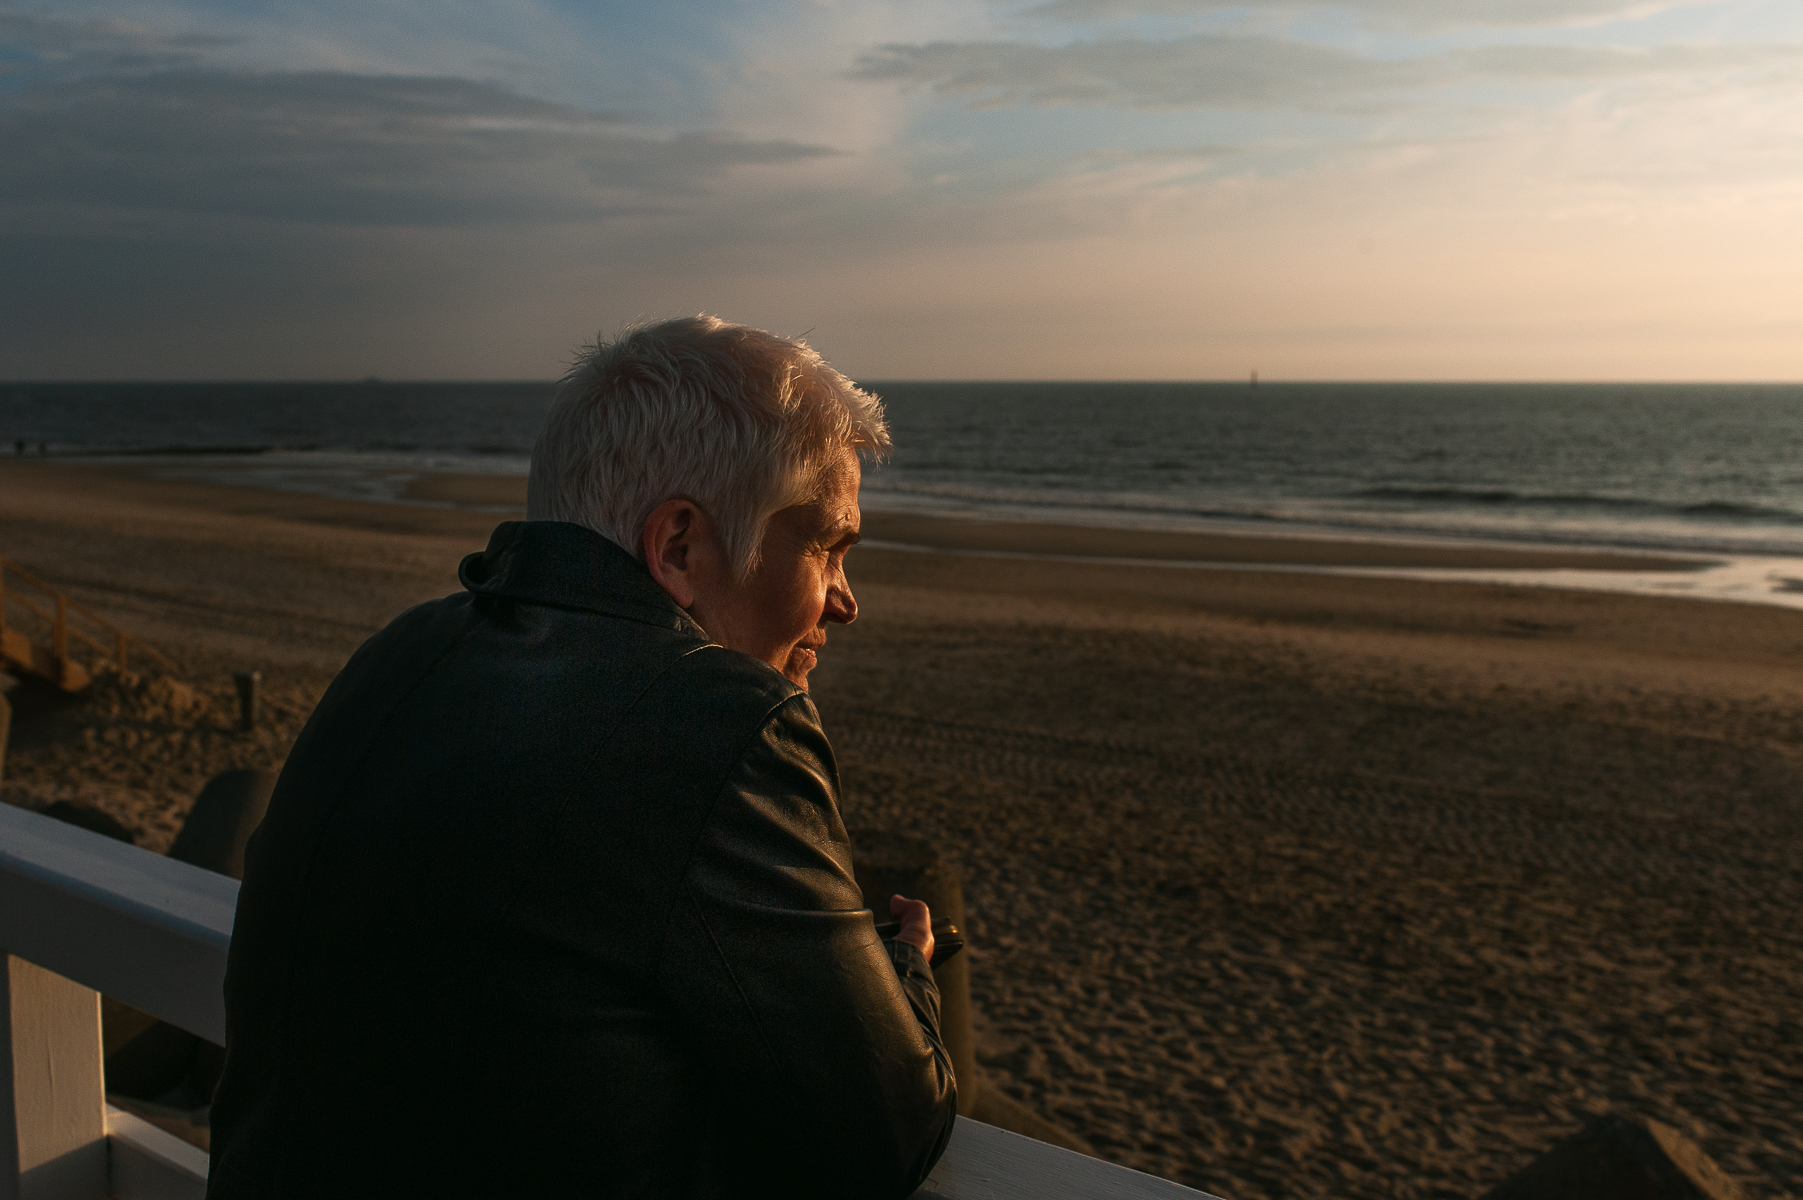 Mom watches the sunset on the promenade in Westerland. Sylt, Germany, June 16, 2018.